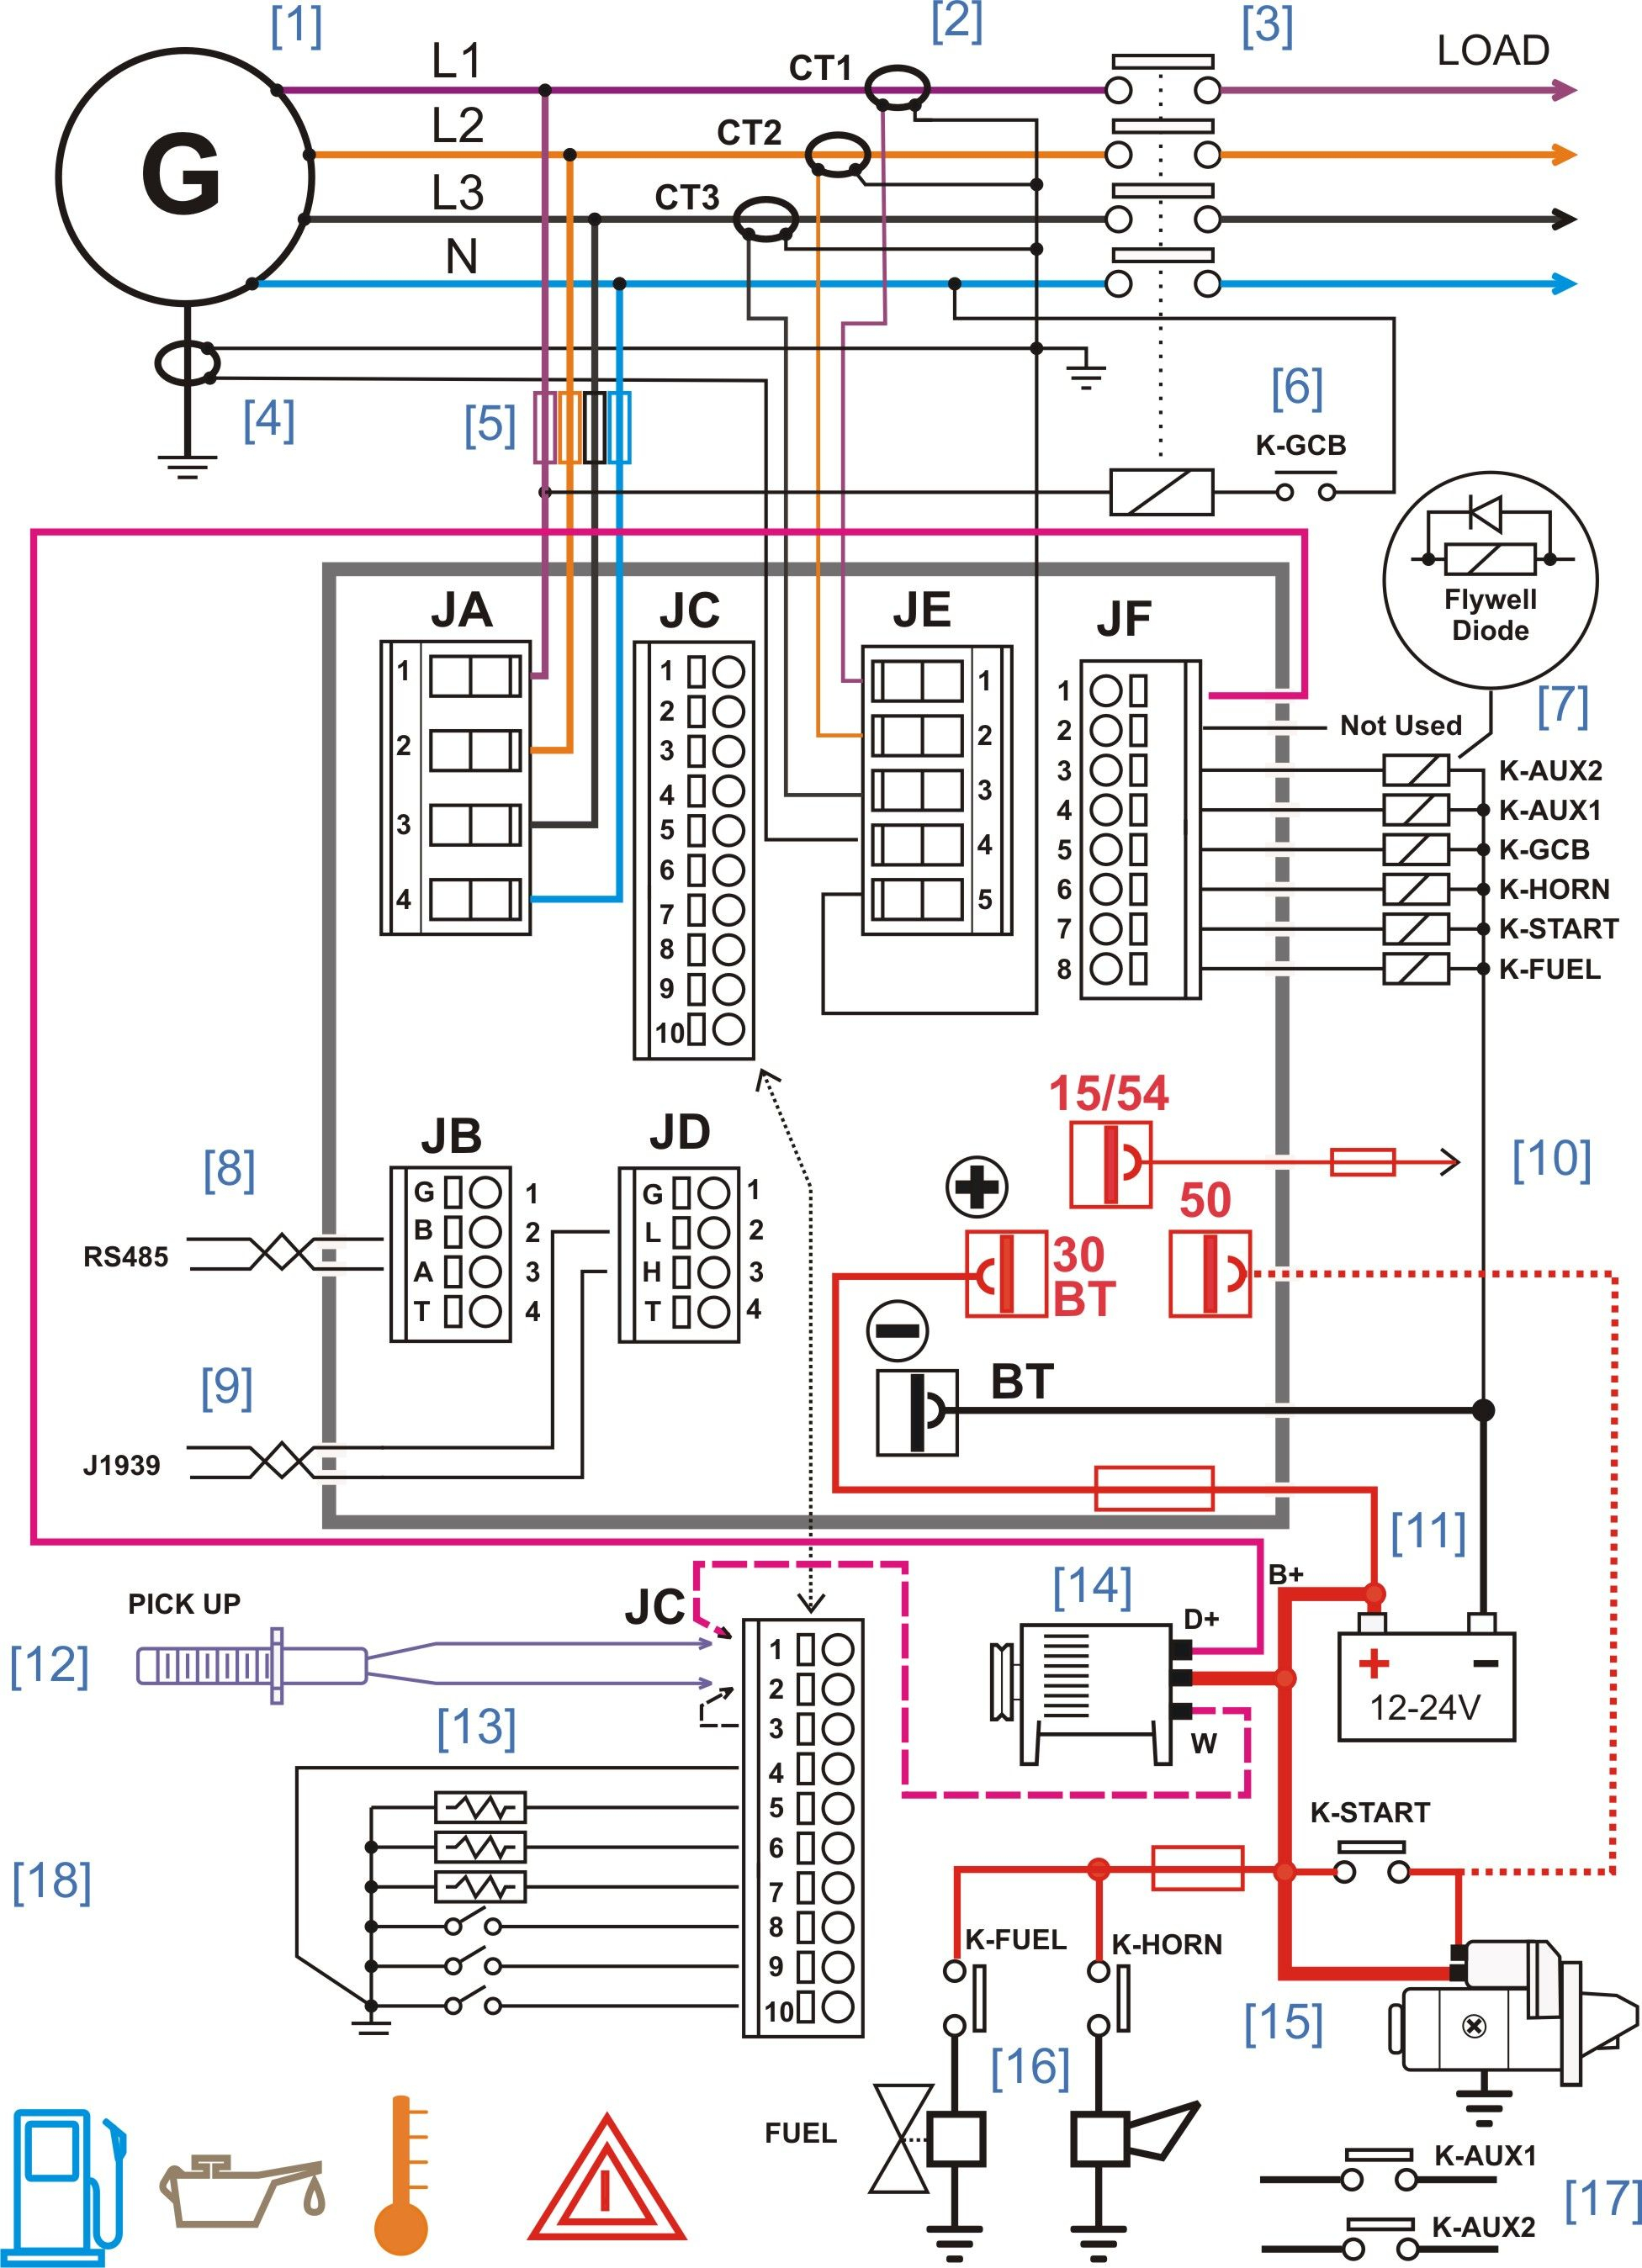 Electric Hot Water Tank Wiring Diagram Download Sample Minn Kota 5 Speed Switch Electrical Control Panel Pdf Diesel Generator 5j